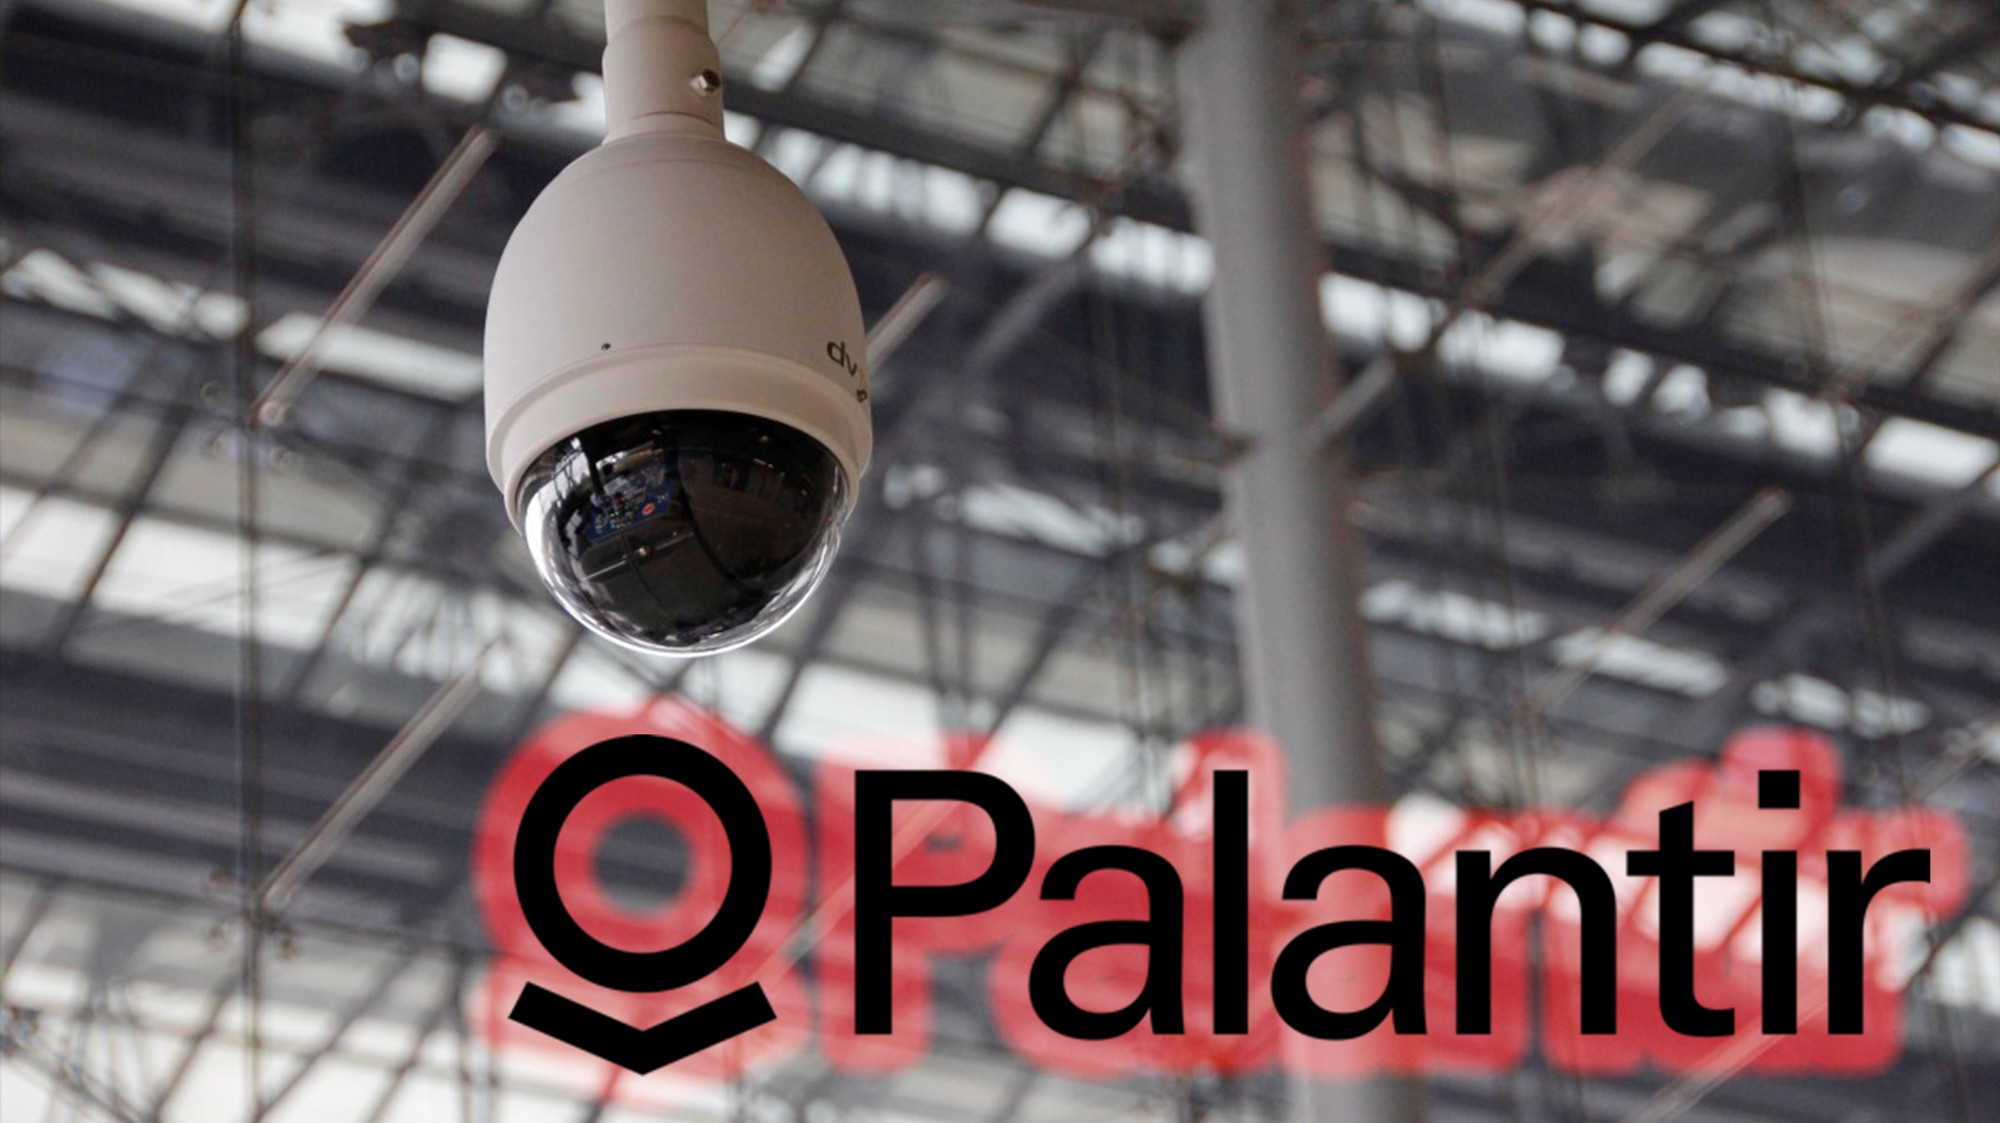 300 Californian Cities Secretly Have Access to Palantir - VICE